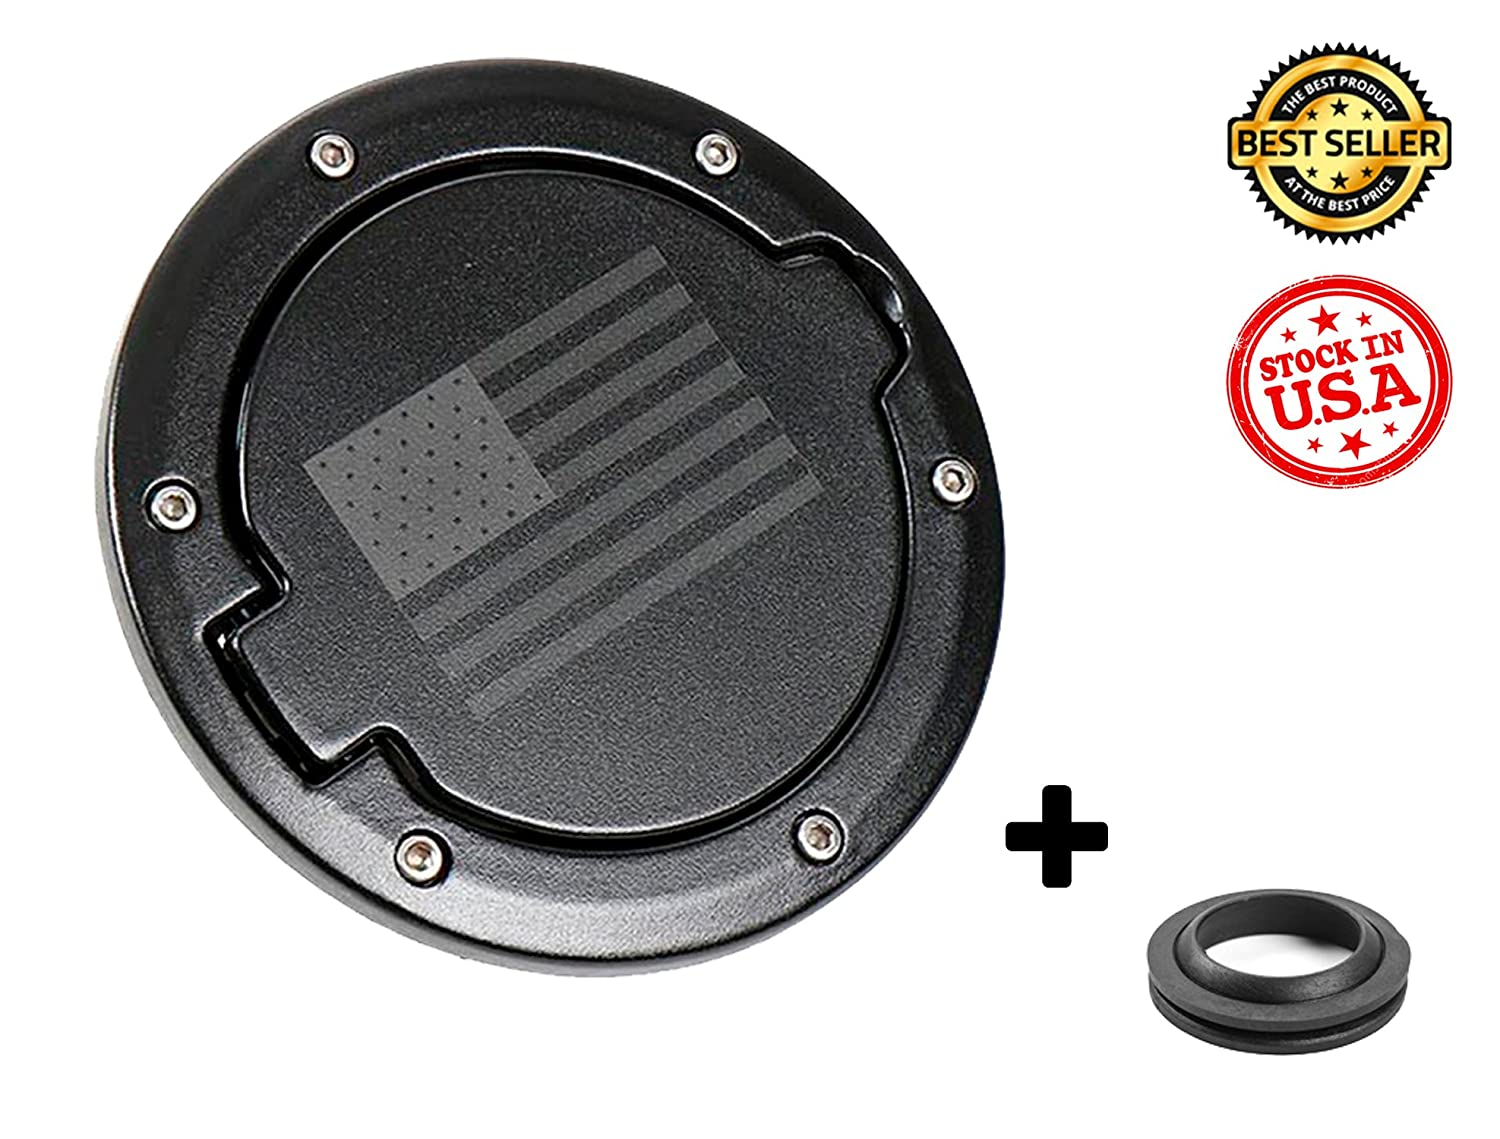 Gas Cap Cover for Jeep Wrangler 2007-2017 (BLACK WITH LOGO) GG AUTOPARTS